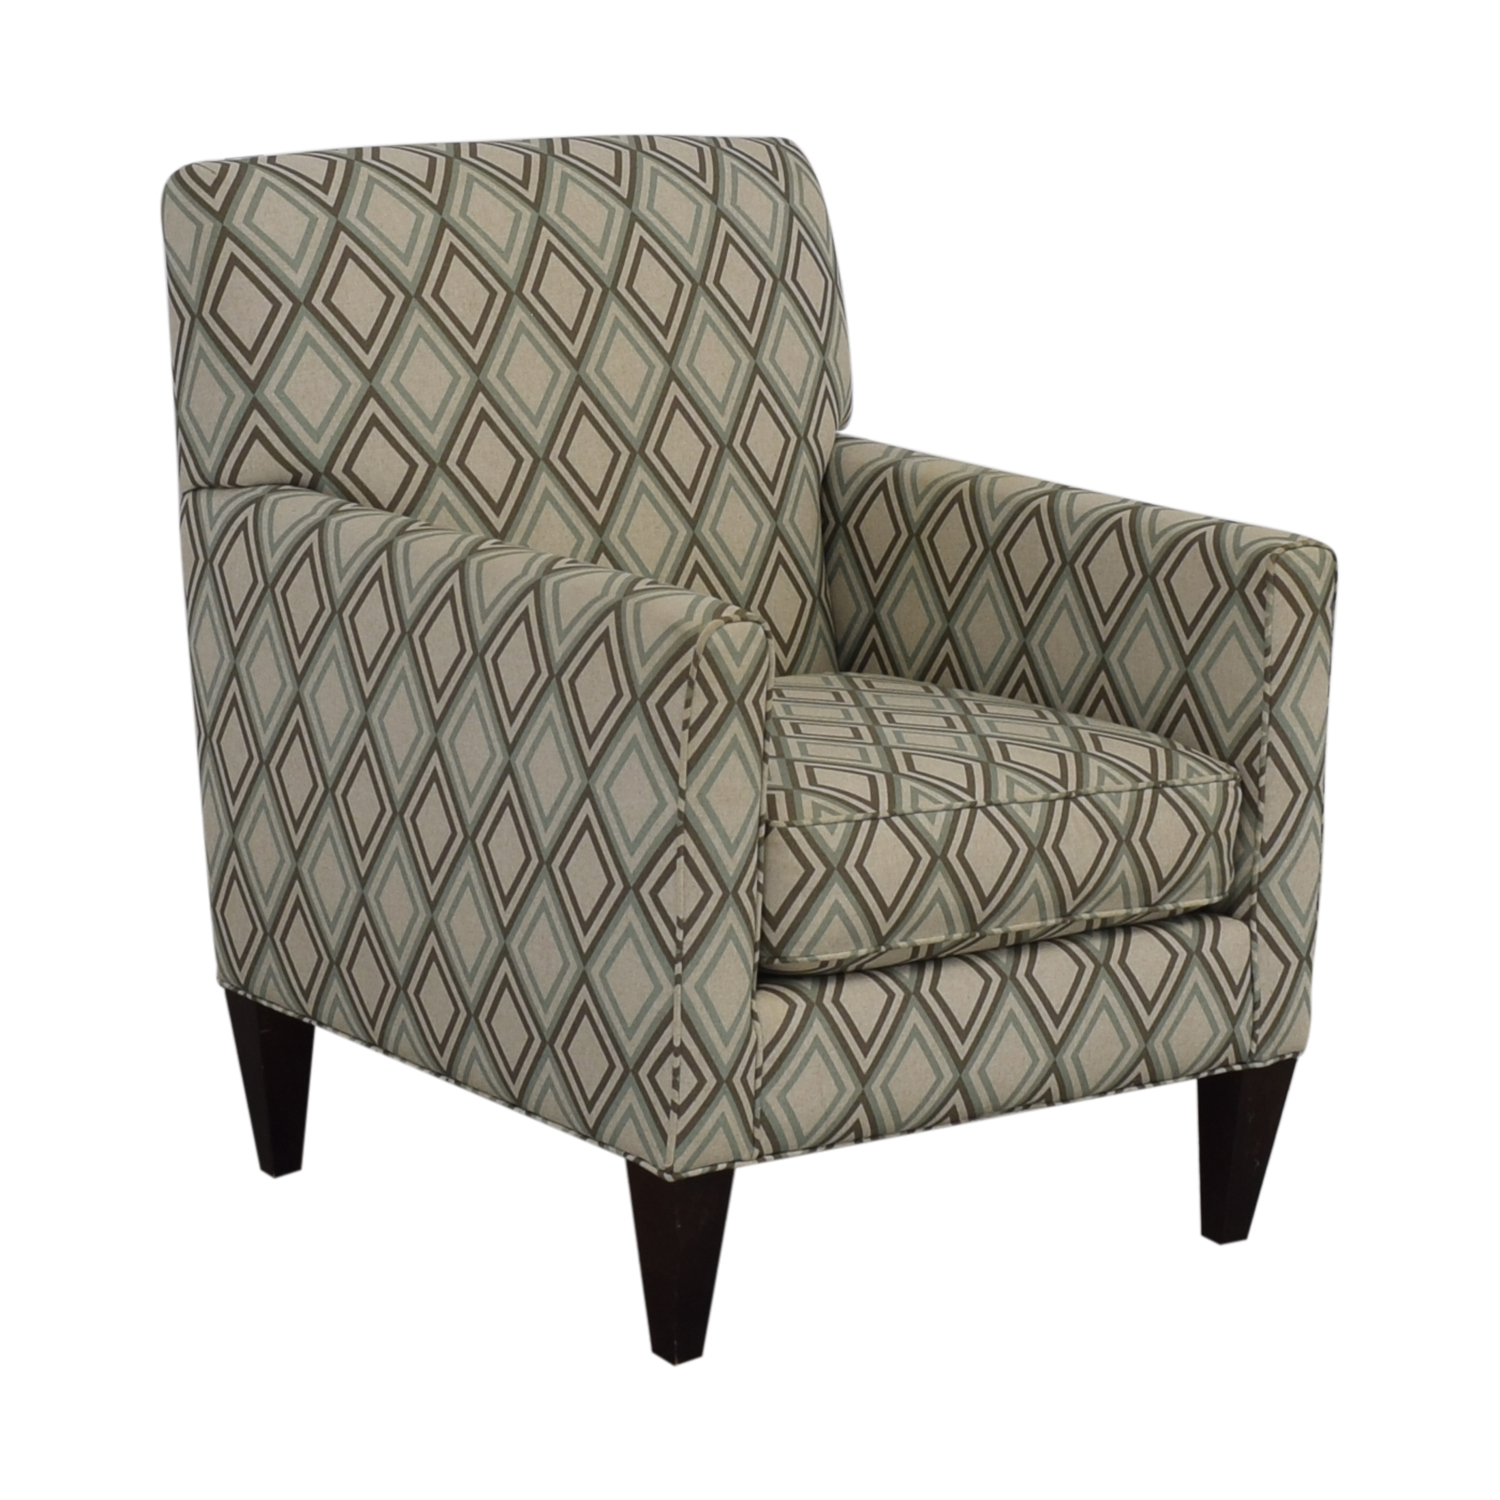 shop Rowe Furniture Patterned Geometric Armchair Rowe Furniture Accent Chairs